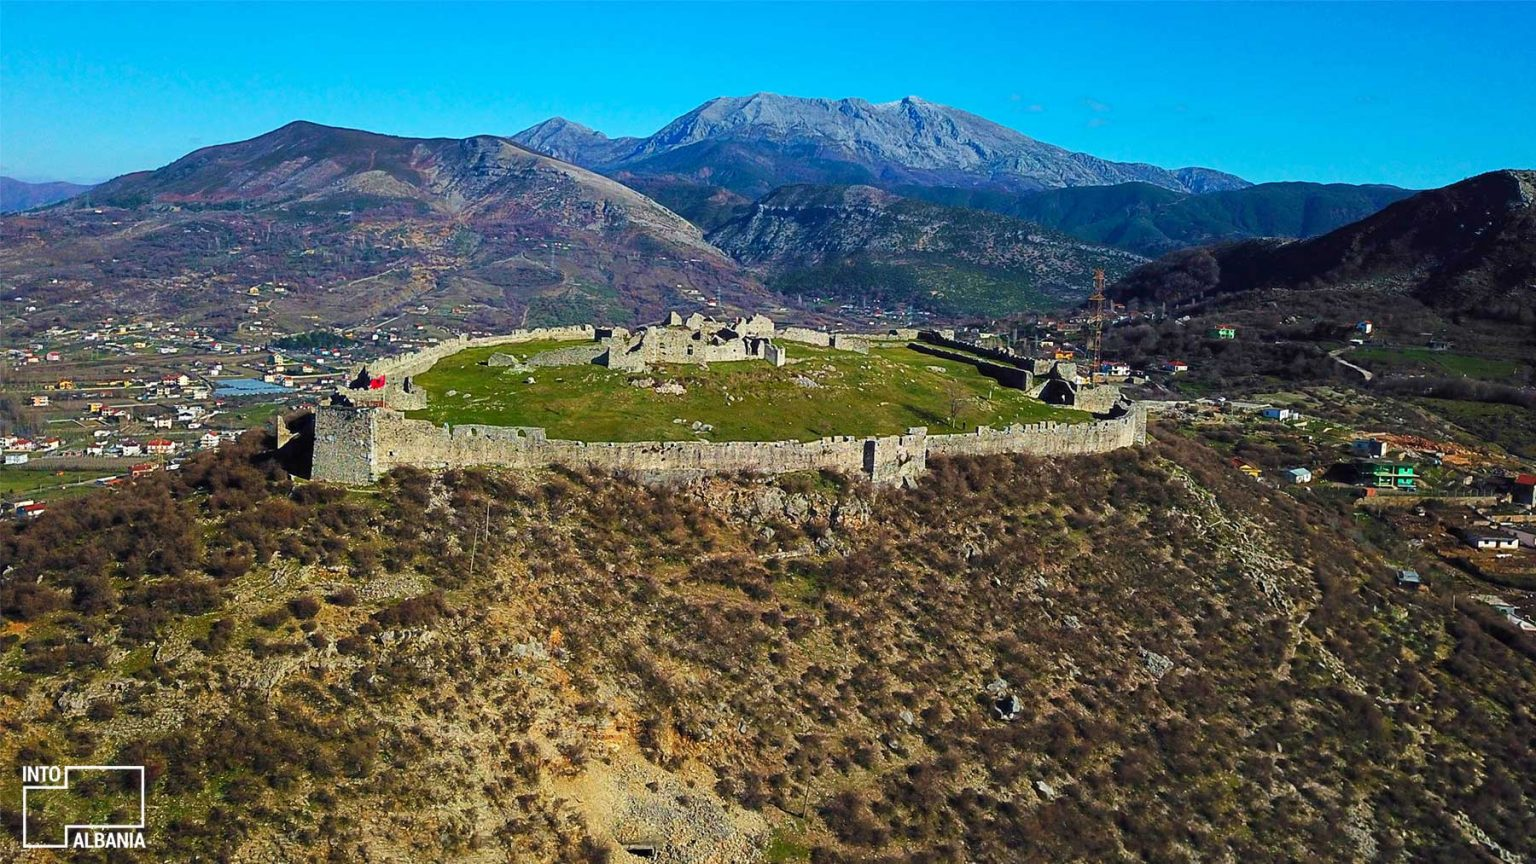 Castle of Lezha, Photo Credits: Fation Plaku